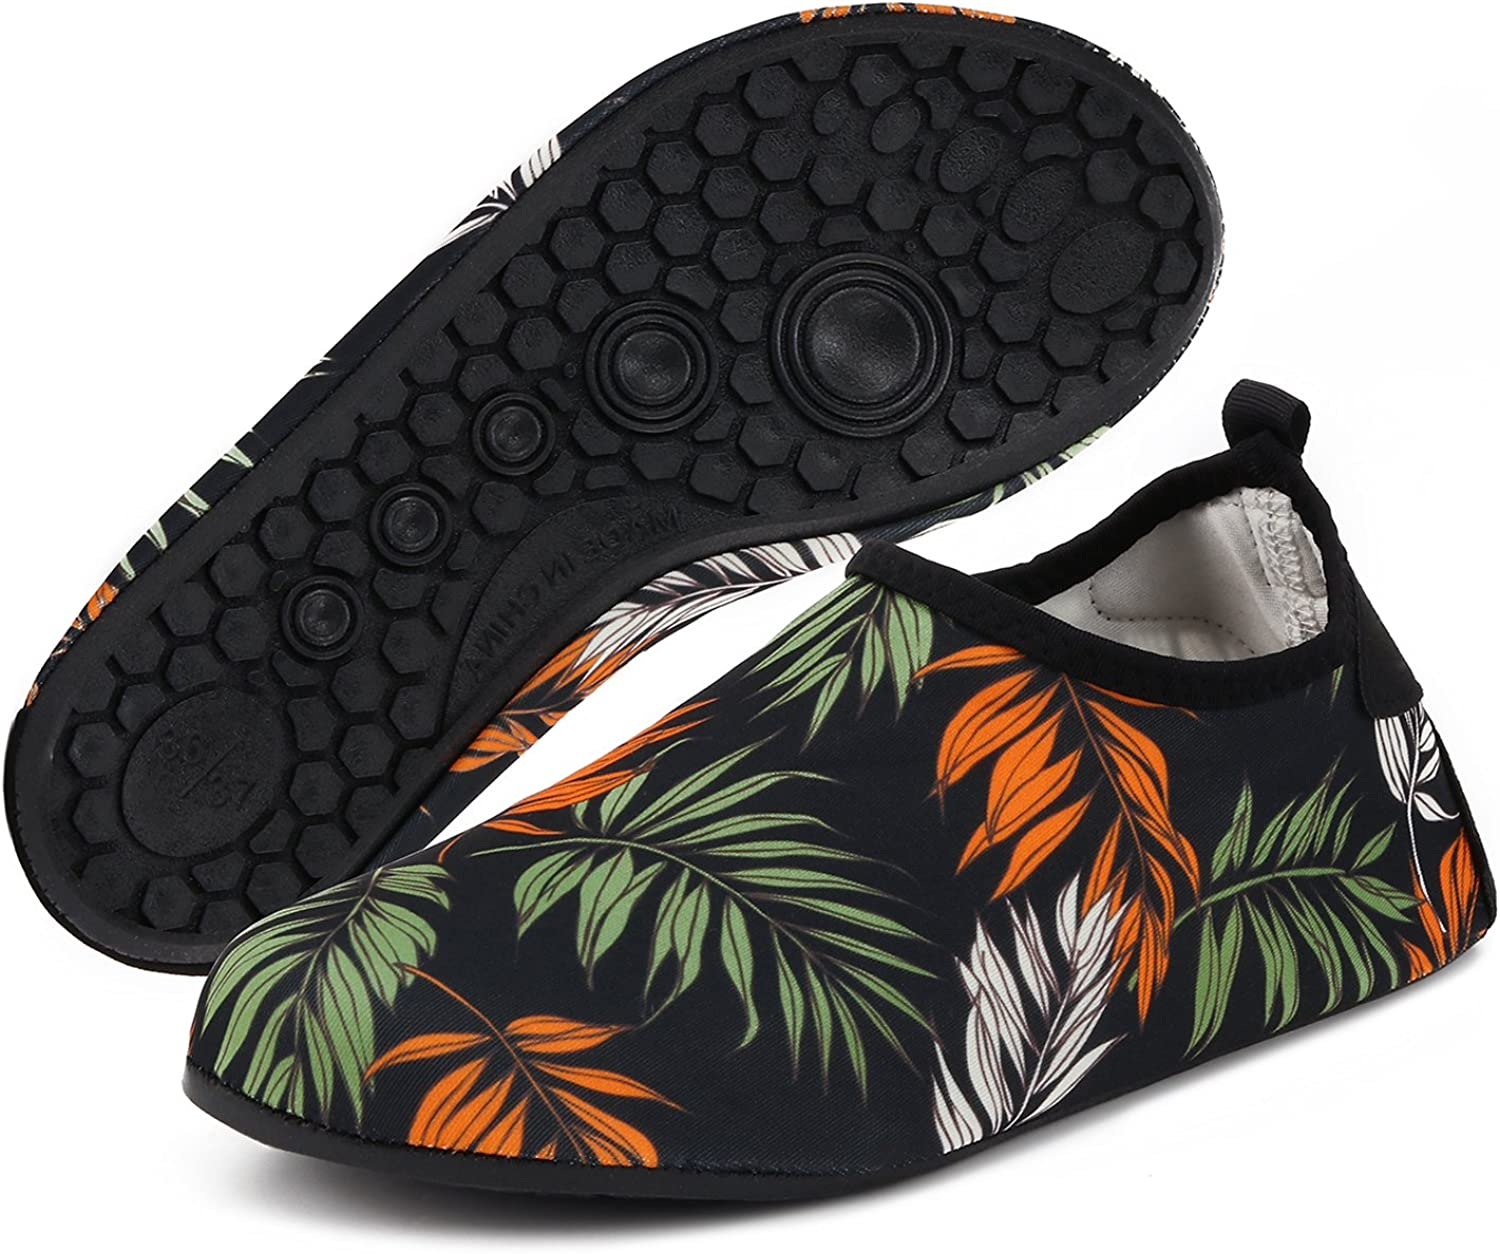 Yidomto Water shoes, Quick-Dry Barefoot Socks for Mens Womens Kids On Beach Pool Swim and Yoga